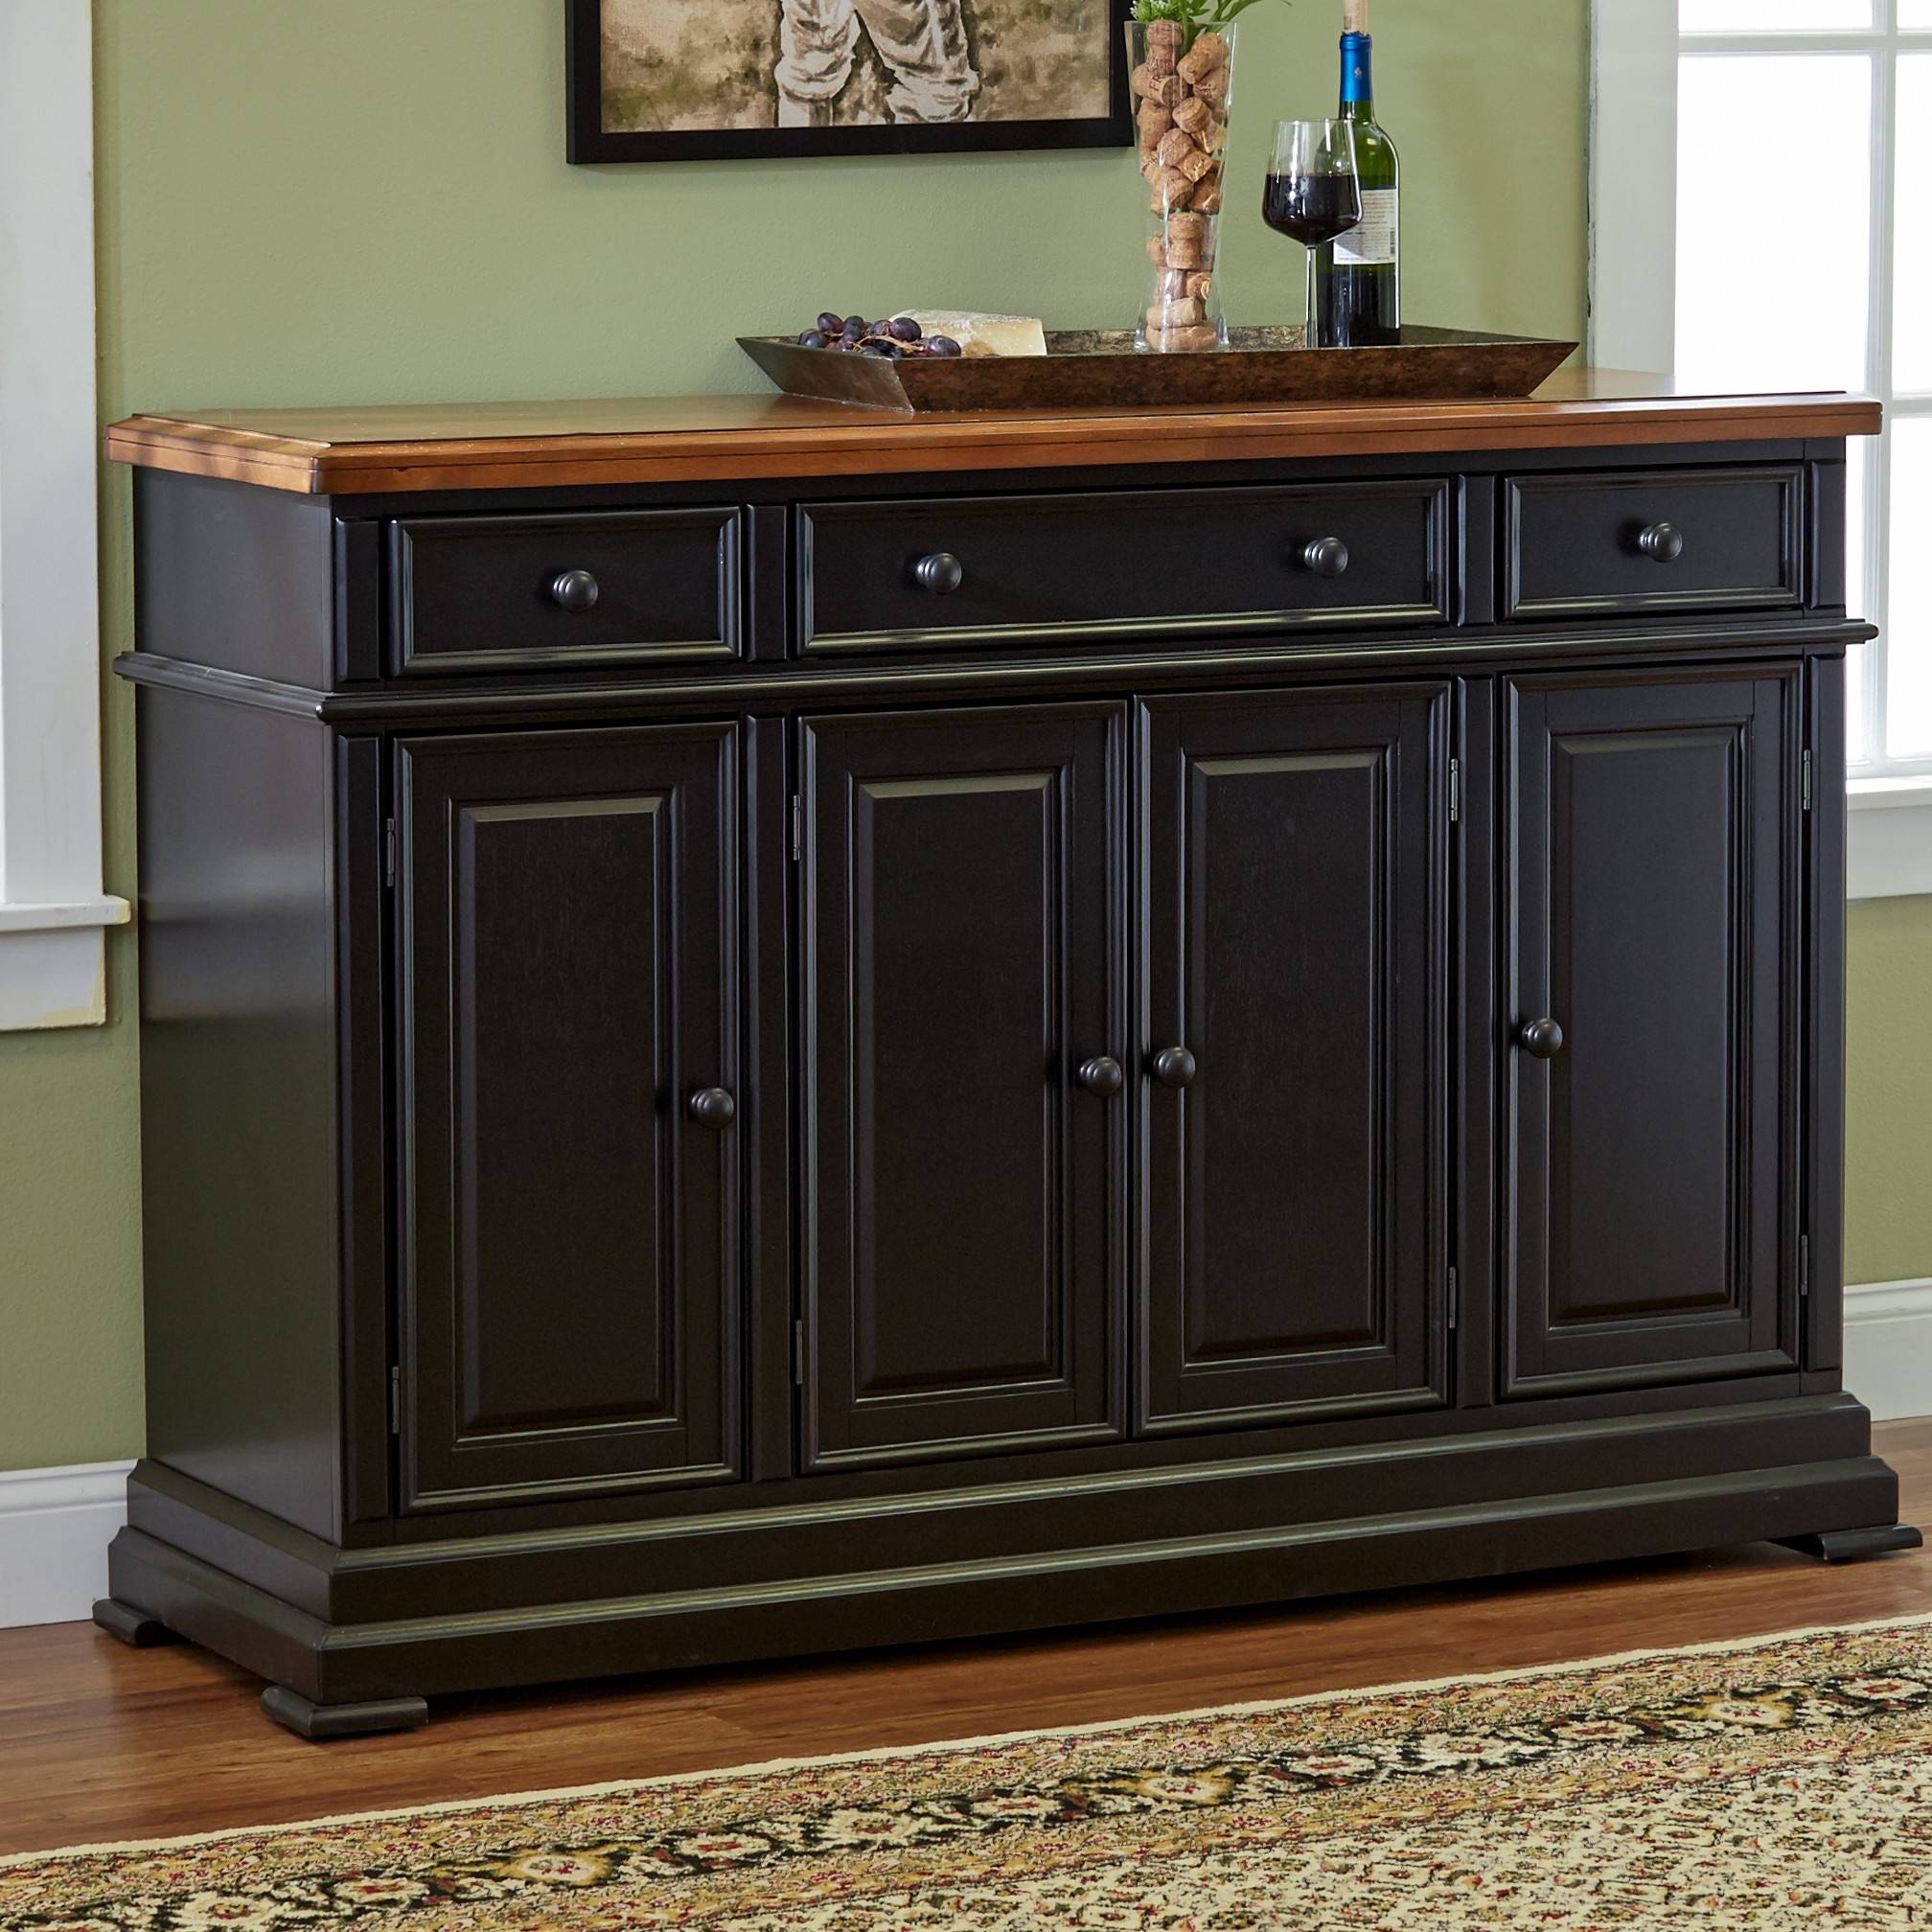 Furniture: Interesting Buffets And Sideboards For Home Furniture inside French Country Sideboards (Image 17 of 30)